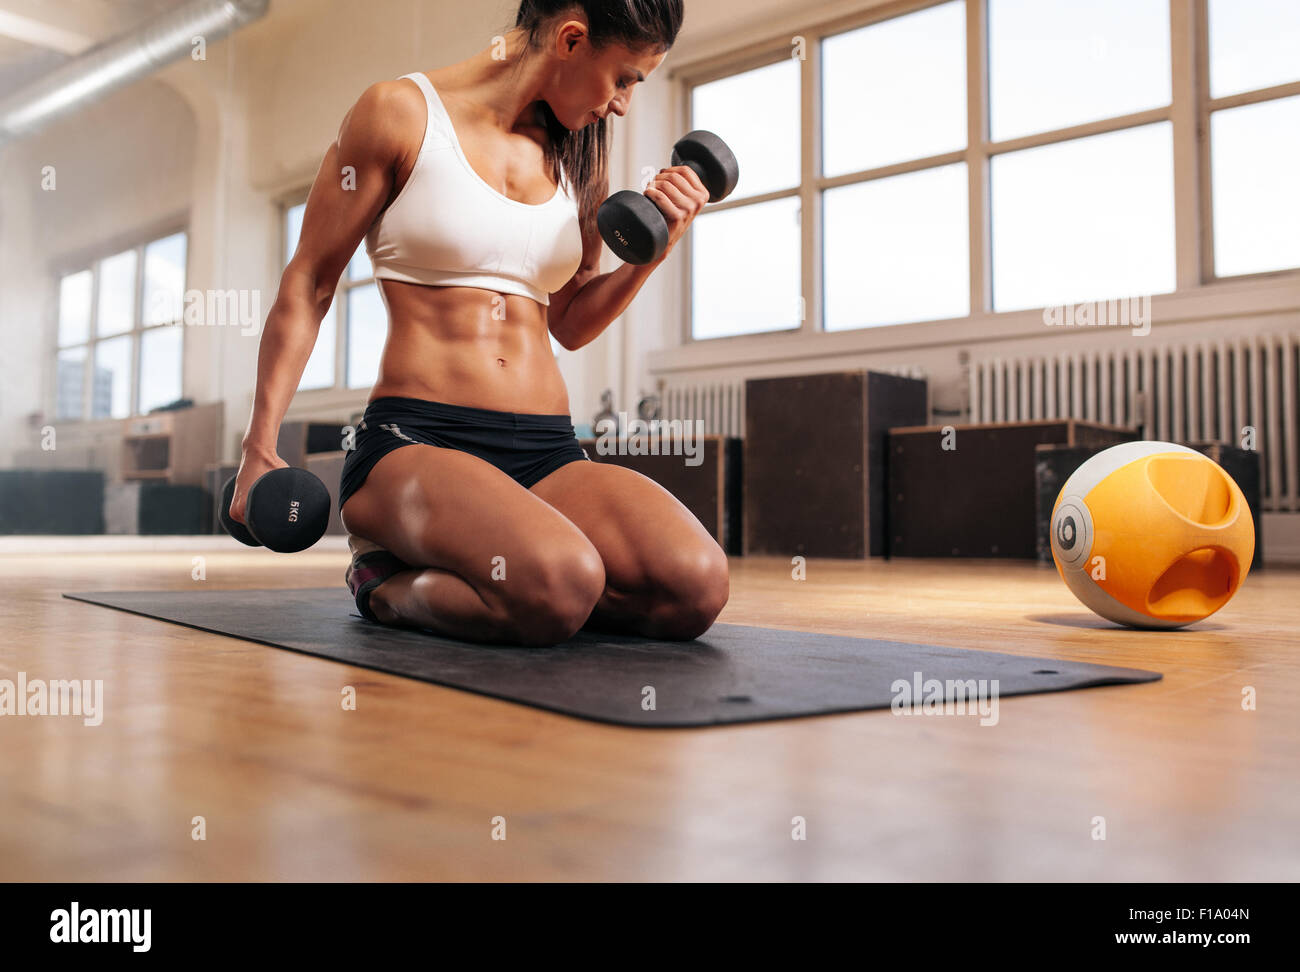 Physically fit woman at the gym lifting dumbbells to strengthen her arms and biceps. Muscular woman sitting on exercise - Stock Image